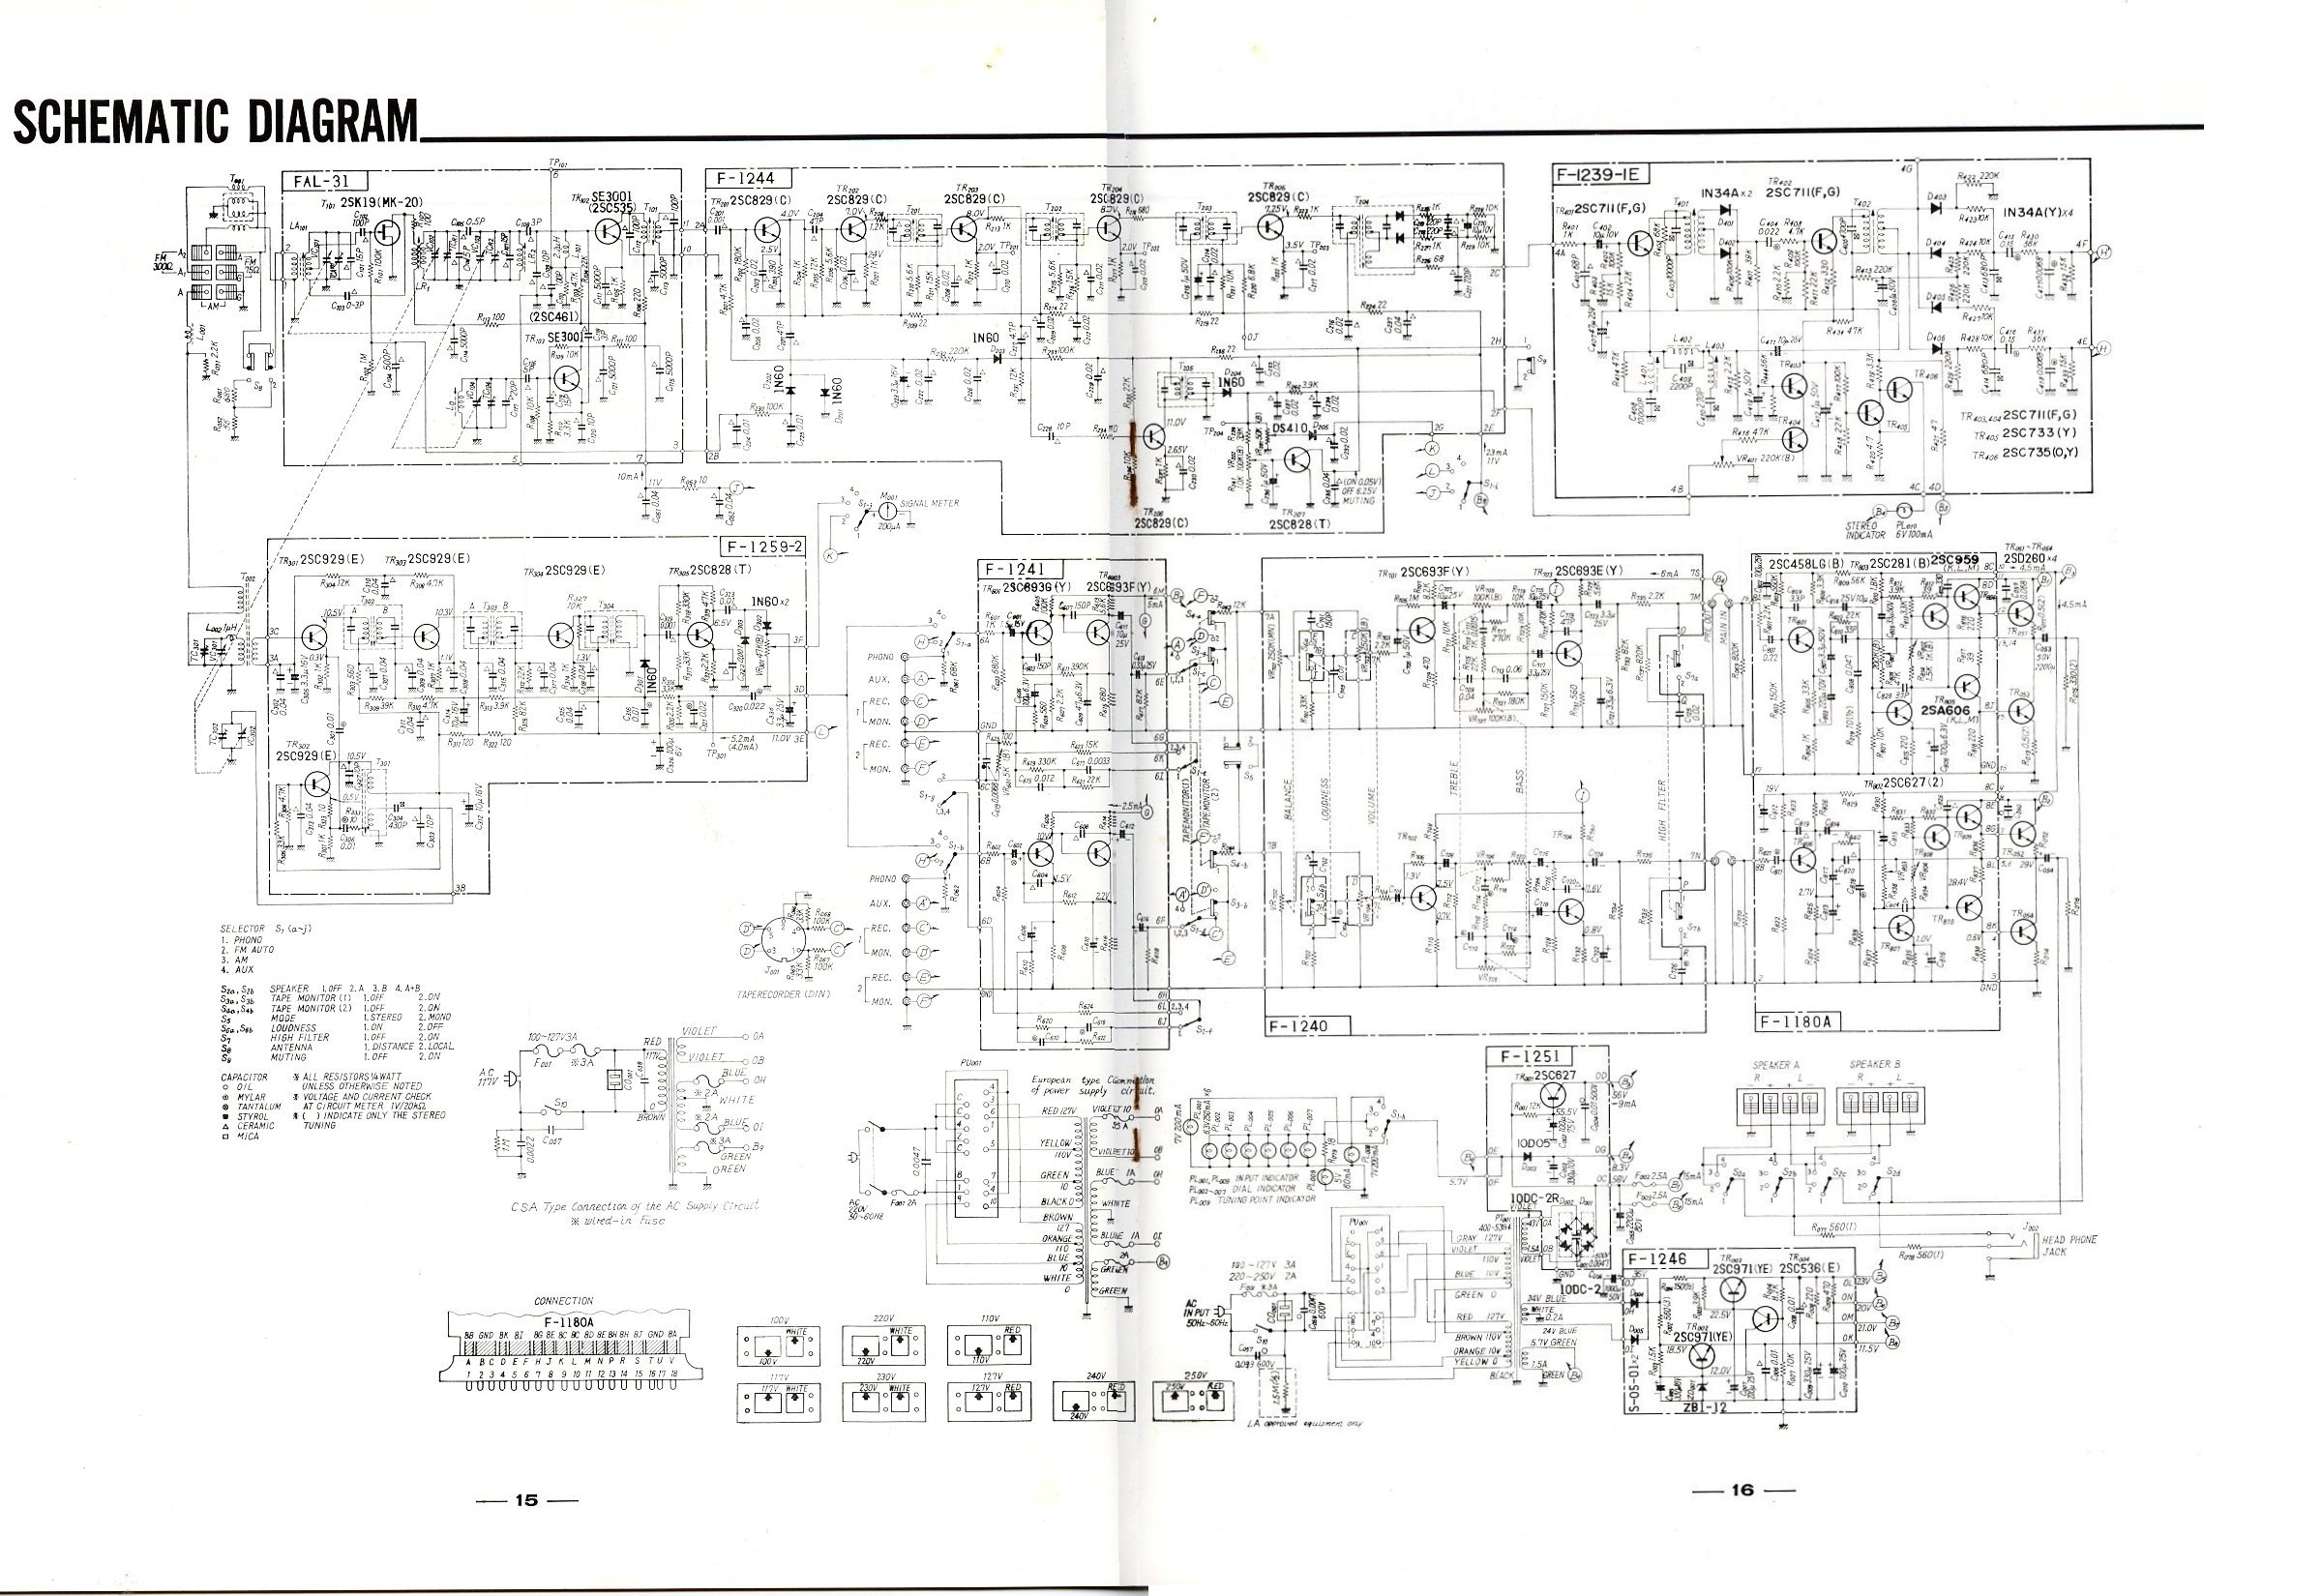 Jvc Ax 40 Service Manual Wiring Library Simple Comfort 2200 Thermostat Diagram Sansui 100x Power Amplifier Tuner Schematic